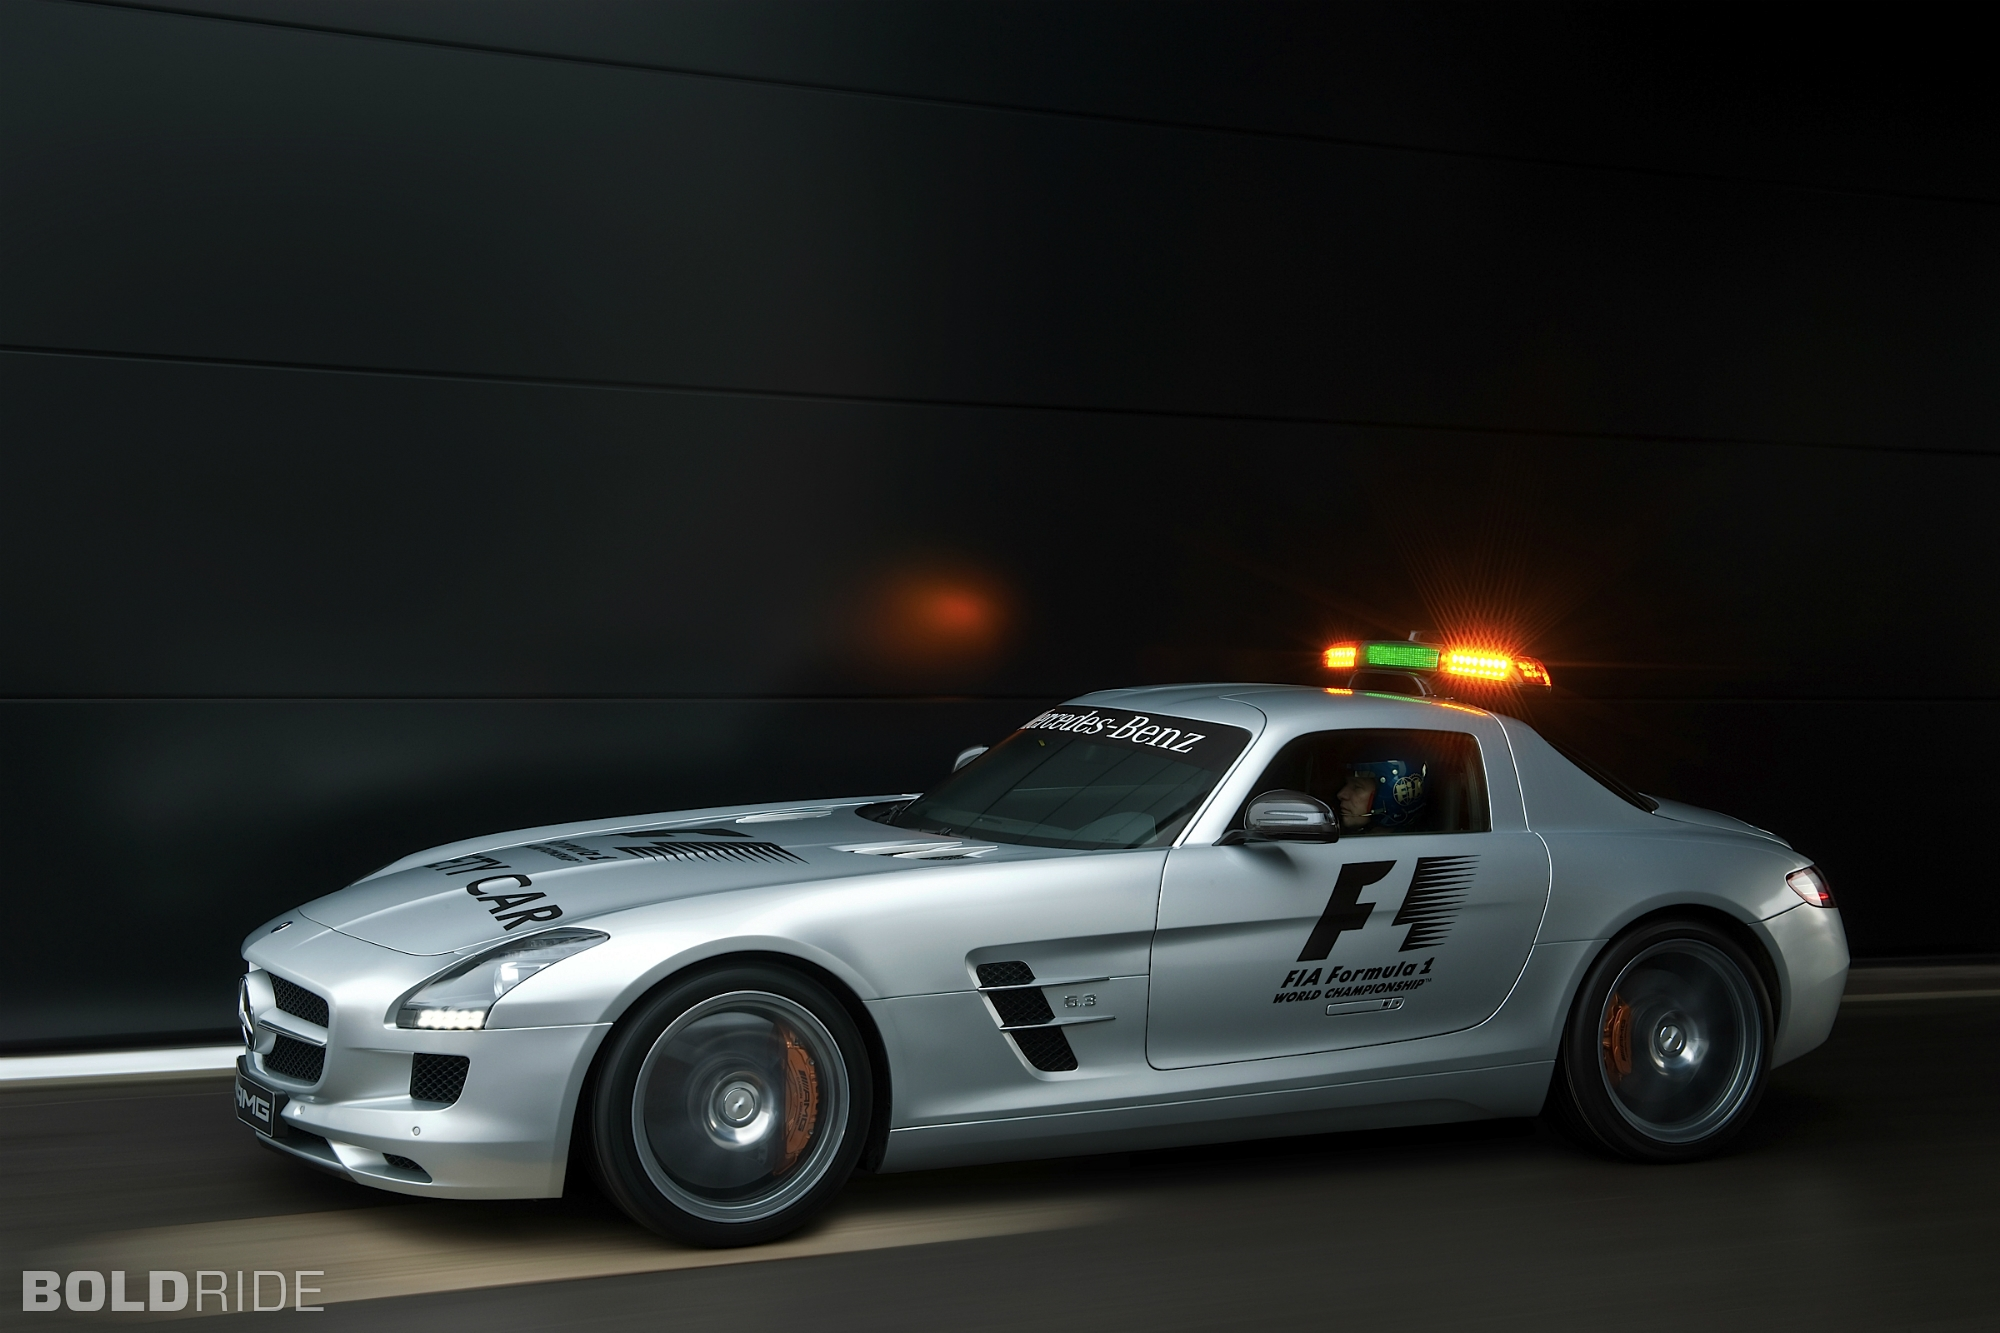 2018 Mercedes Benz CLK55 AMG F1 Safety Car photo - 5